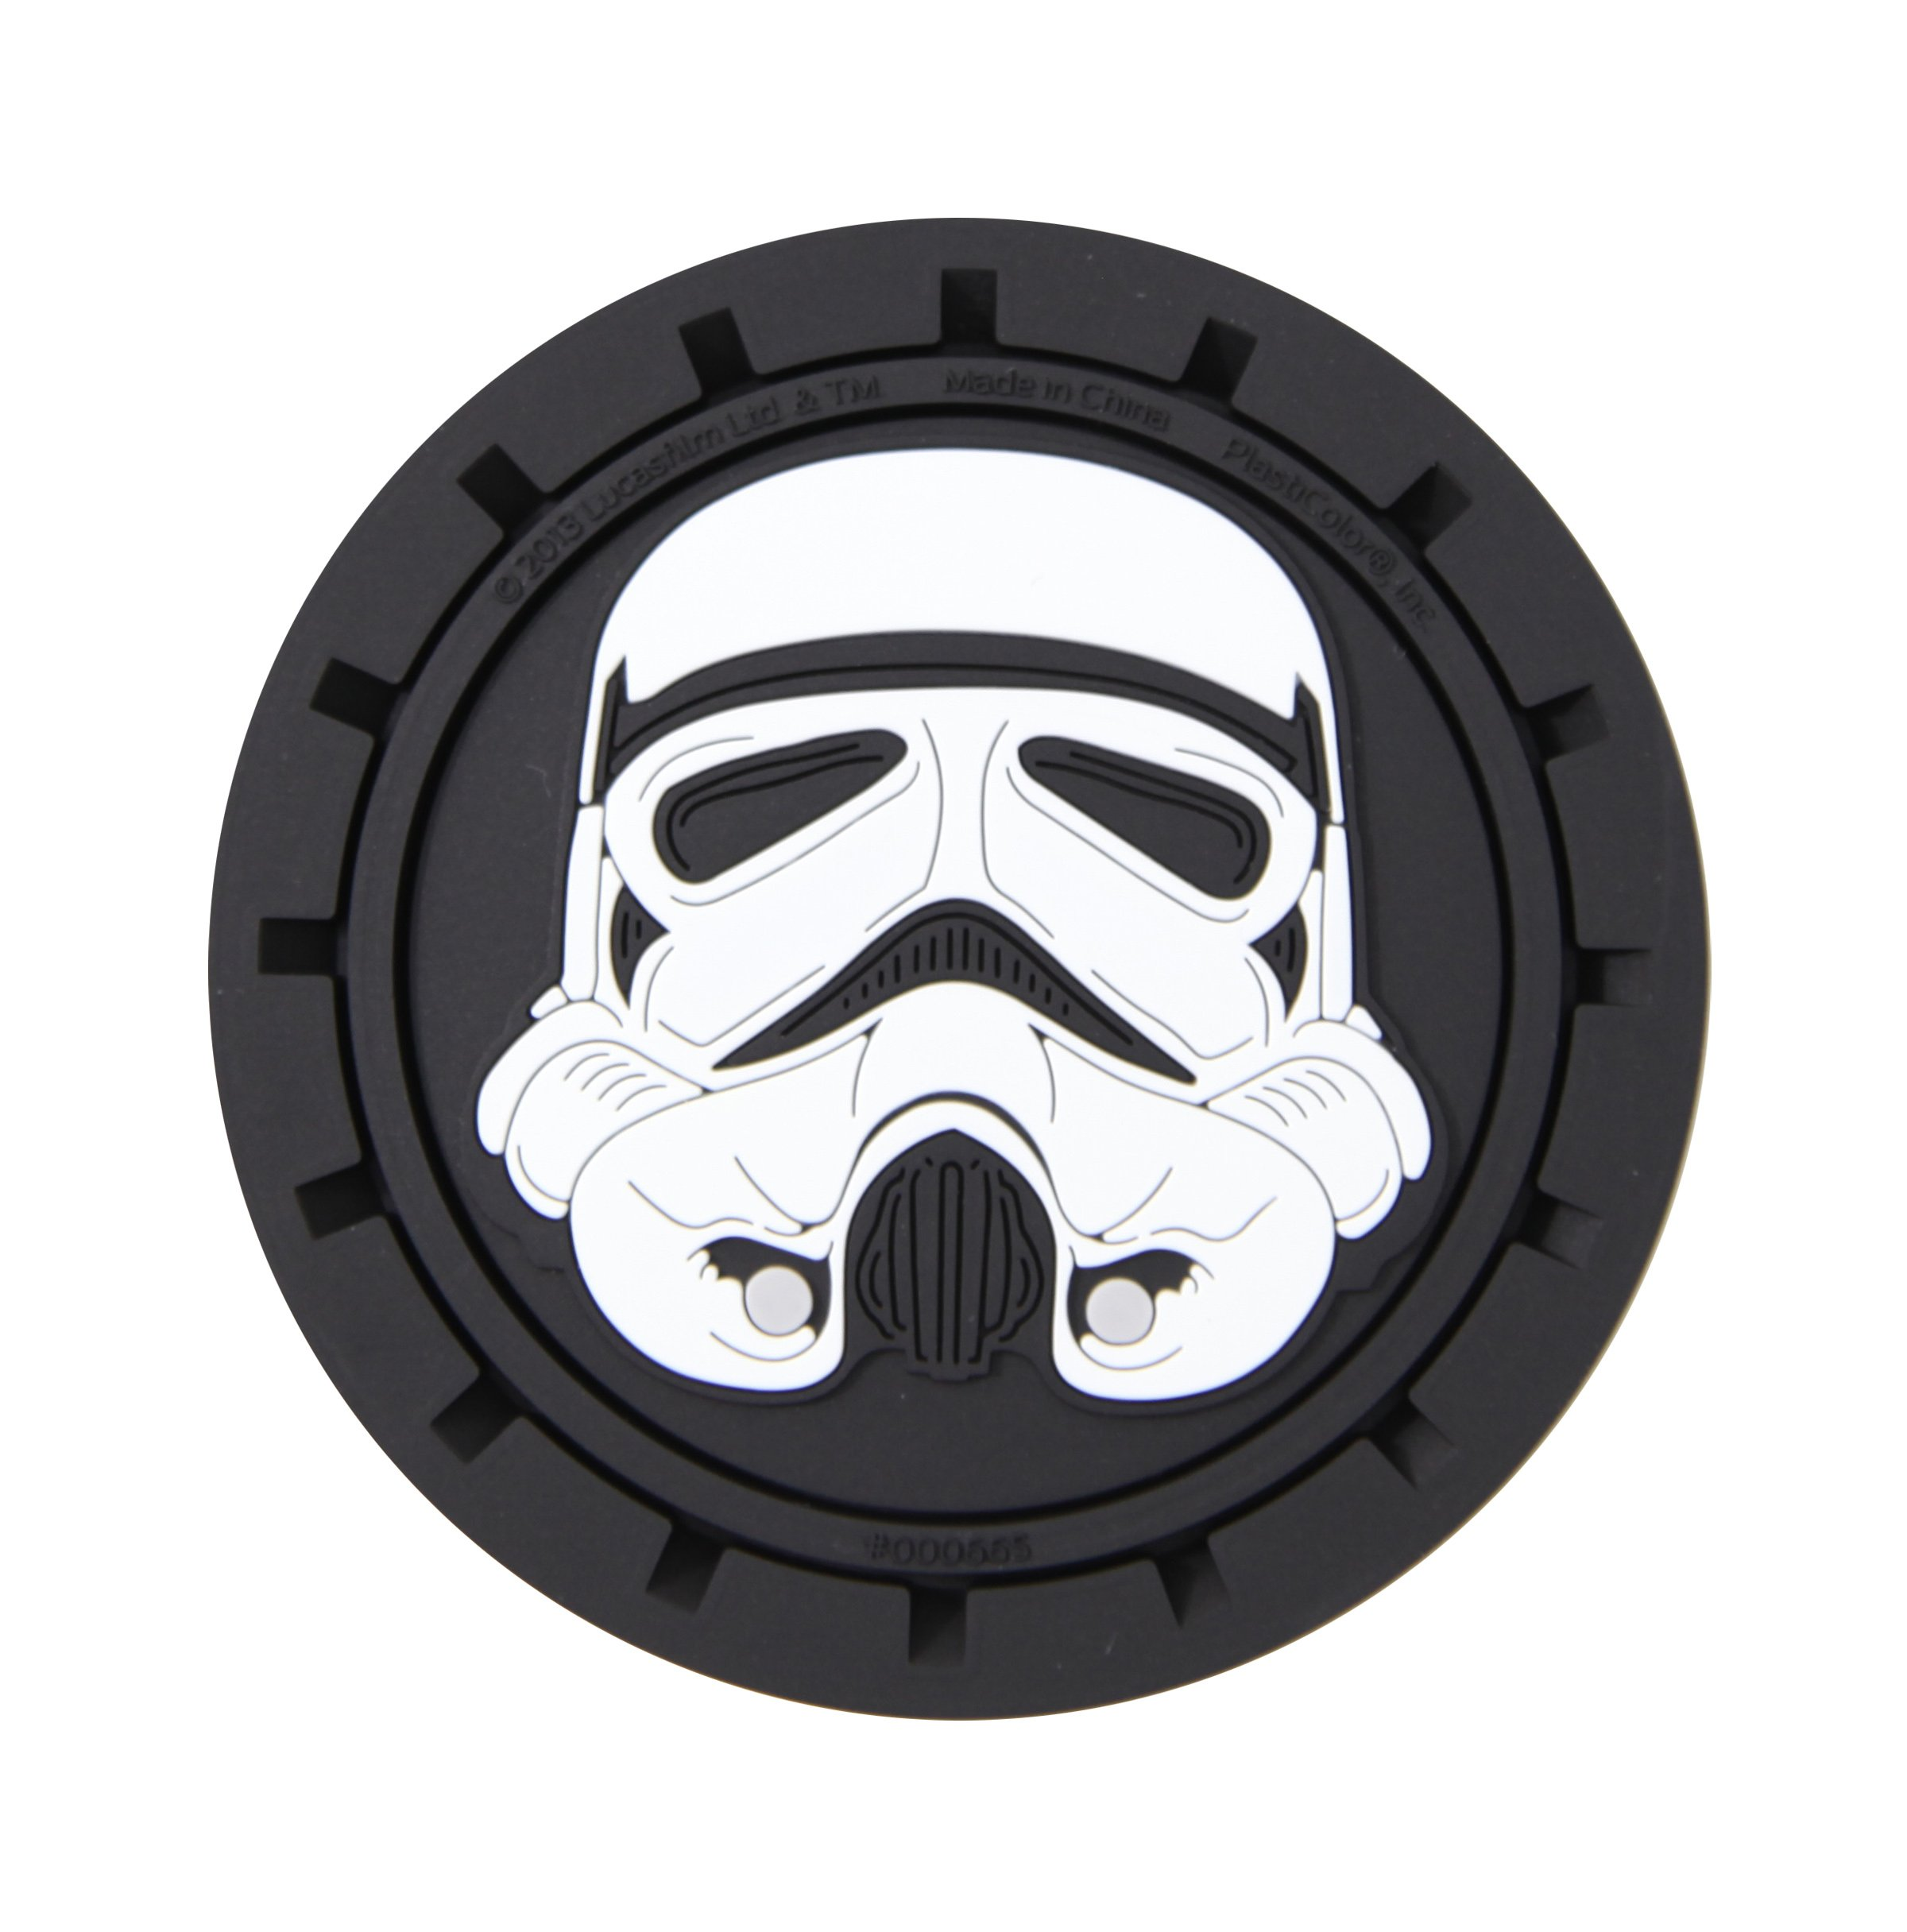 Plasticolor 000665R01 Star Wars Stormtrooper Cup Holder Coaster